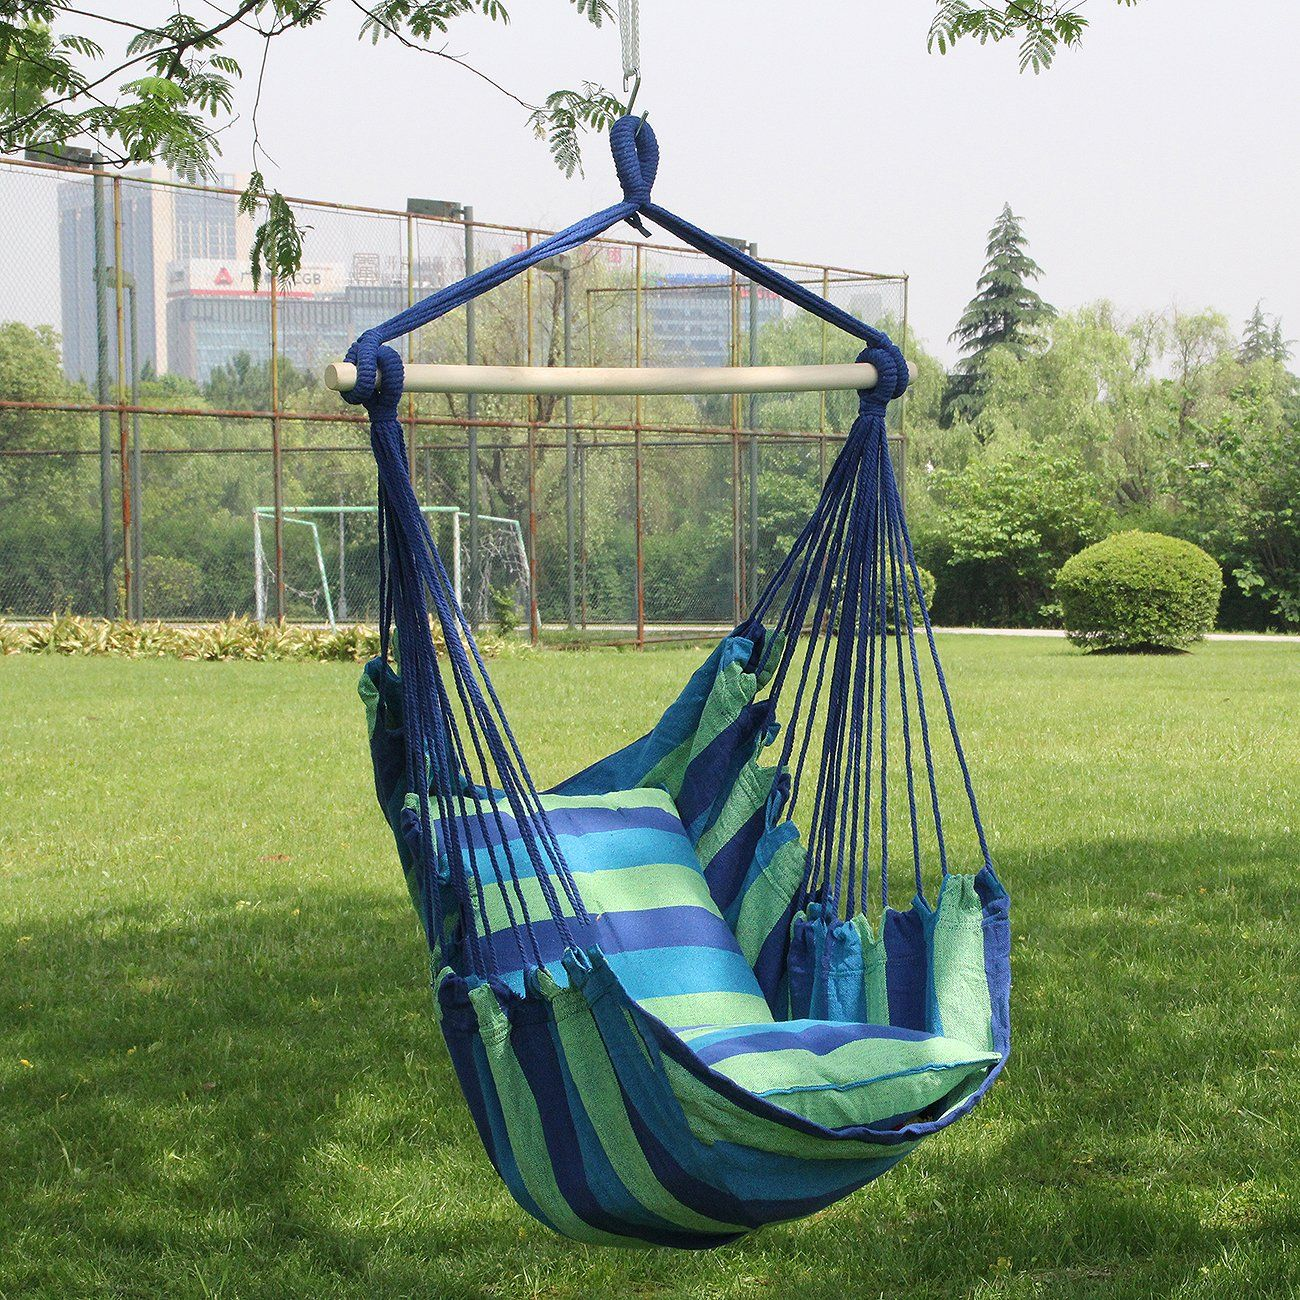 Sorbus Hanging Rope Hammock Chair Swing Seat for Any Indoor or Outdoor Spaces Max. 265 Lbs 2 Seat Cushions Included >>> Click image to review more details. (This is an affiliate link) #OutdoorFurniture